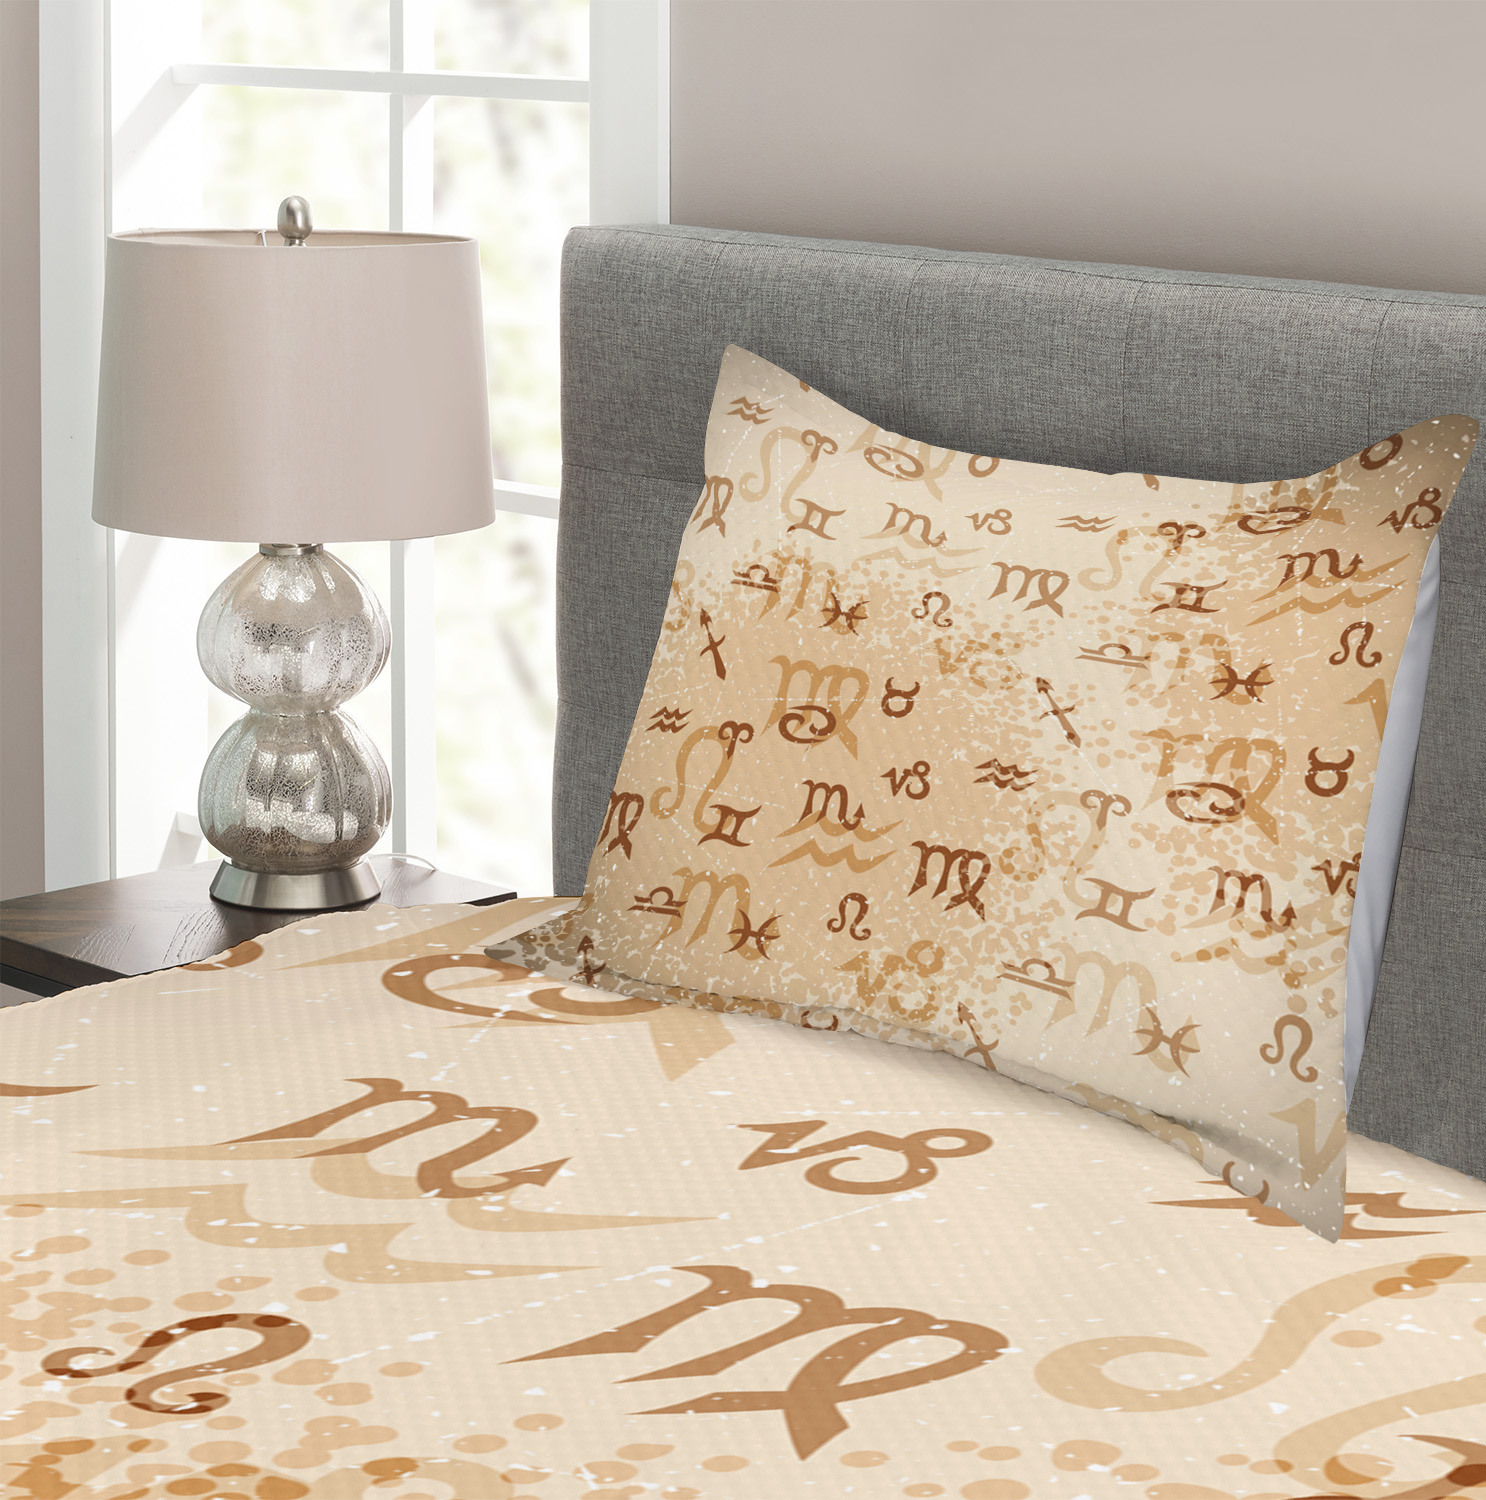 Zodiac Quilted Bedspread /& Pillow Shams Set Astrology Signs Scorpio Print